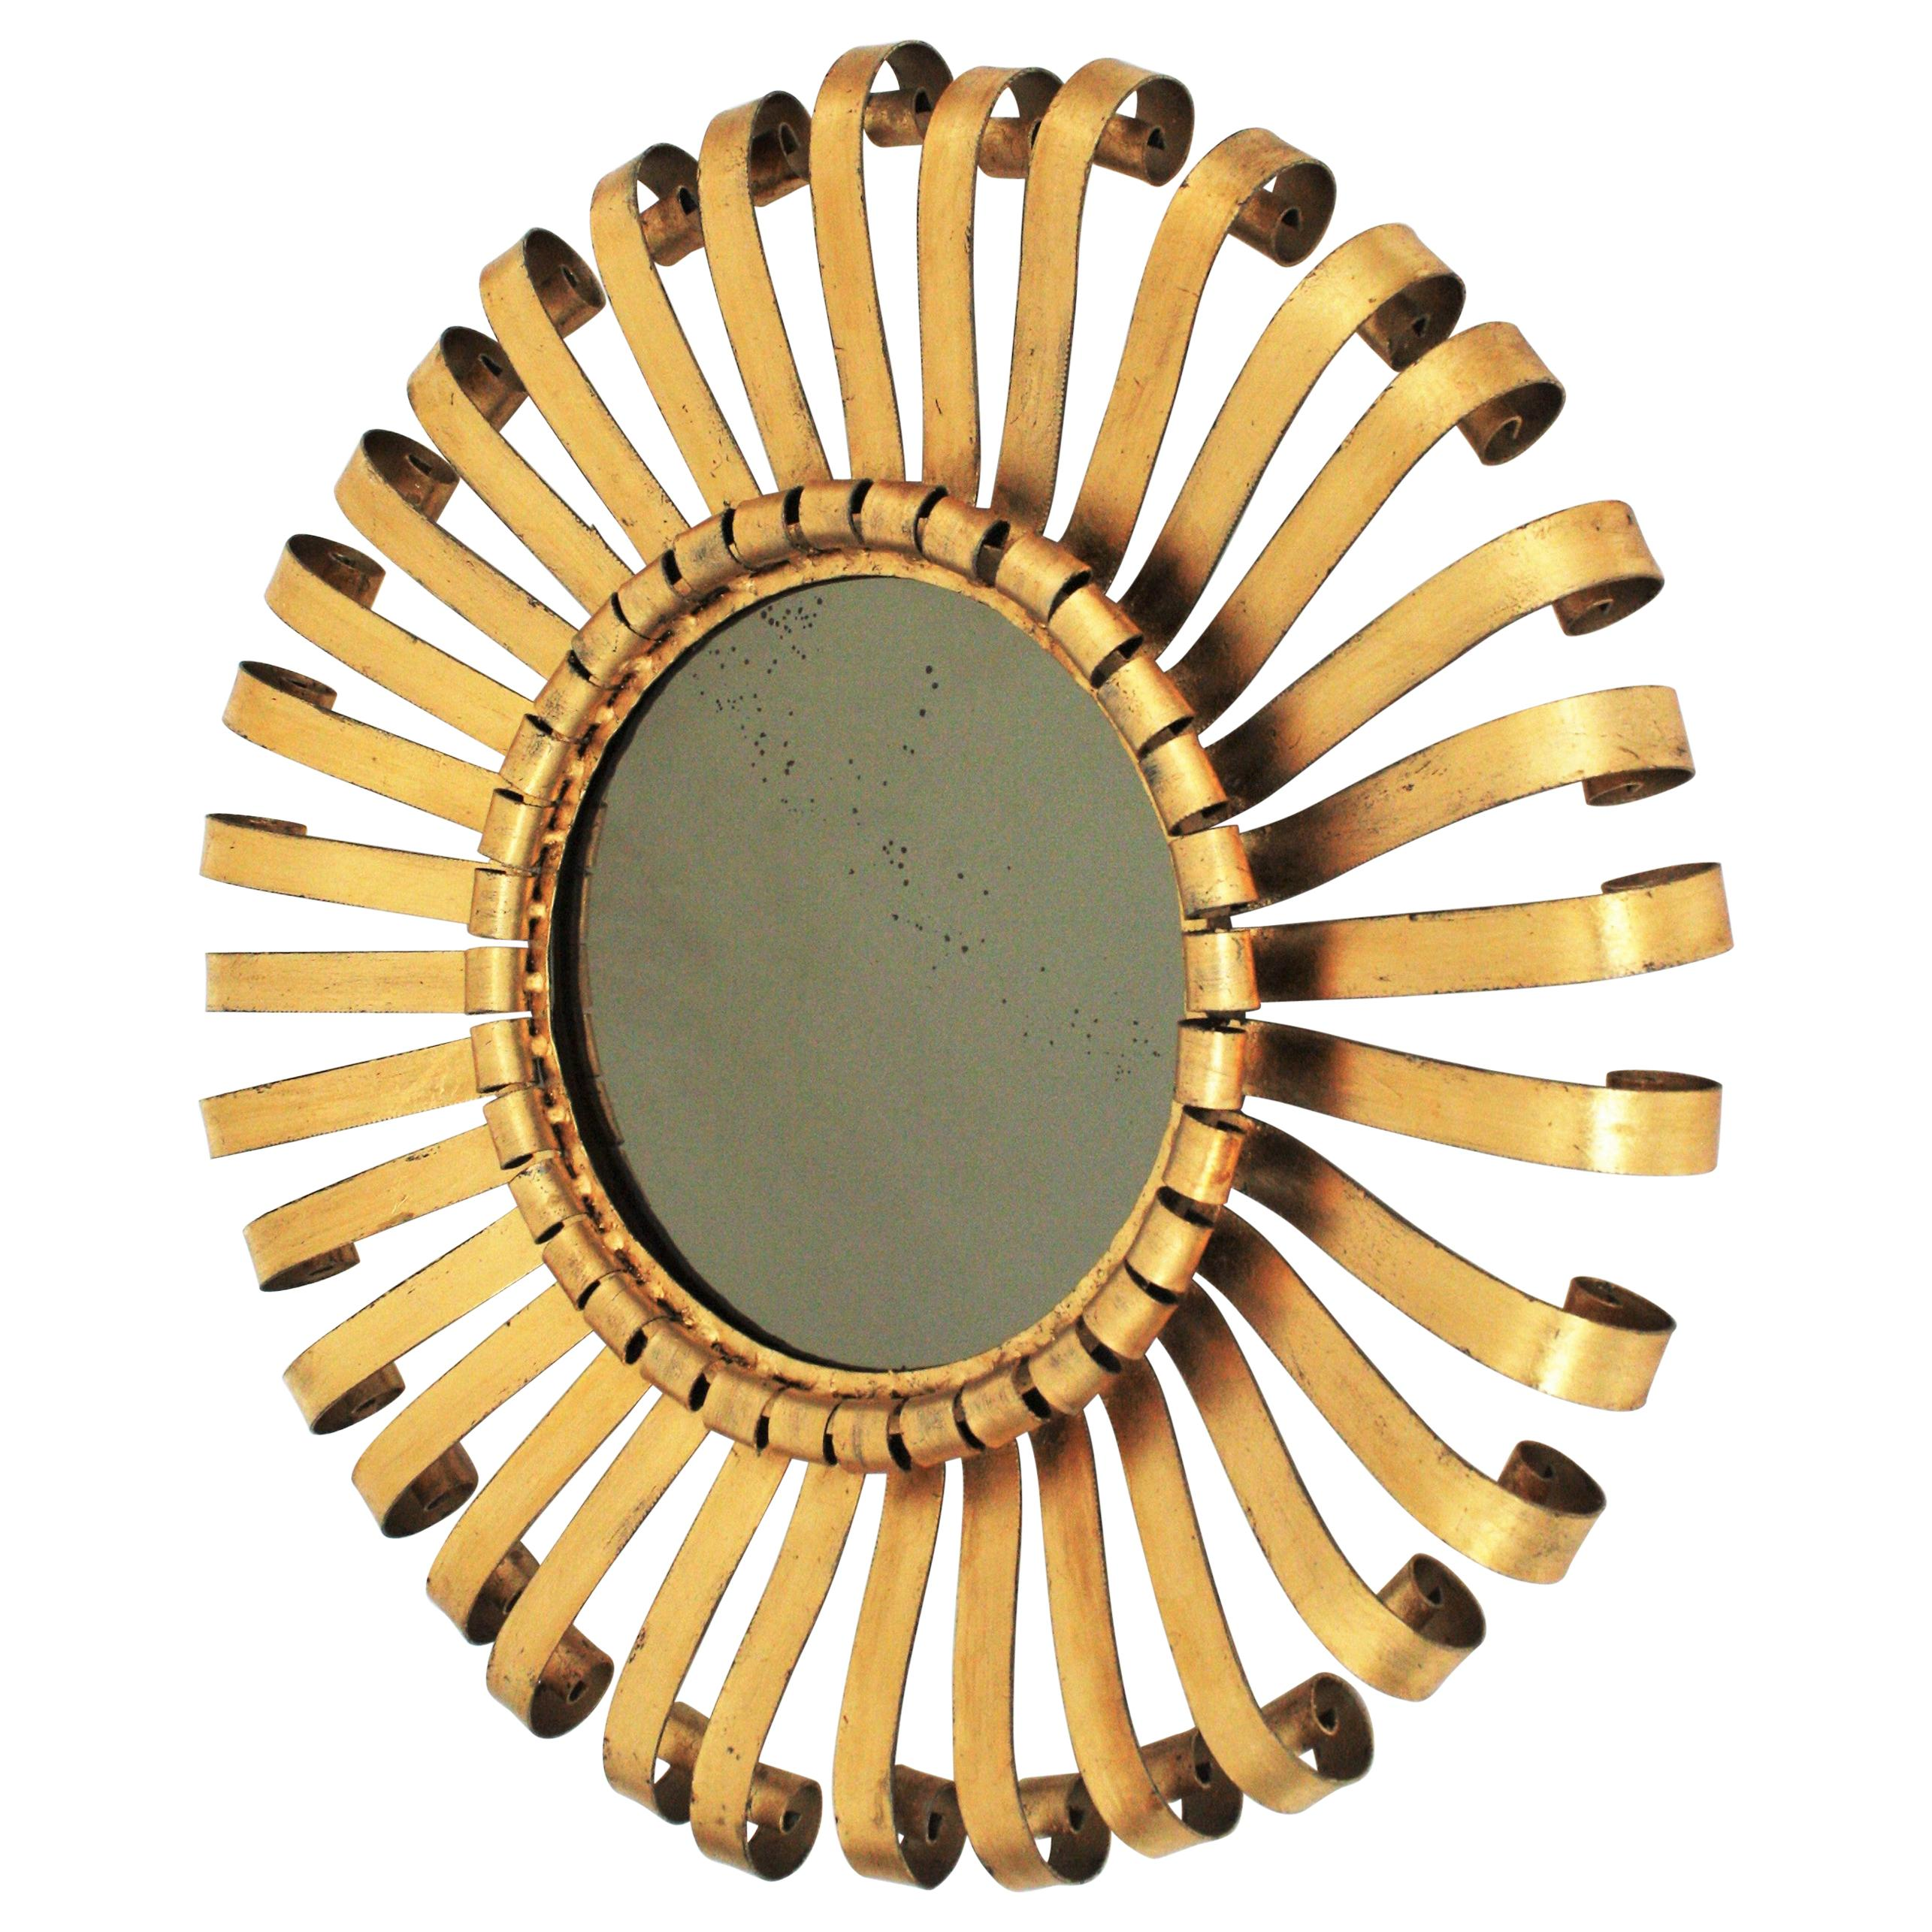 Sunburst Mirror in Gilt Iron with Scrolled Frame, 1960s